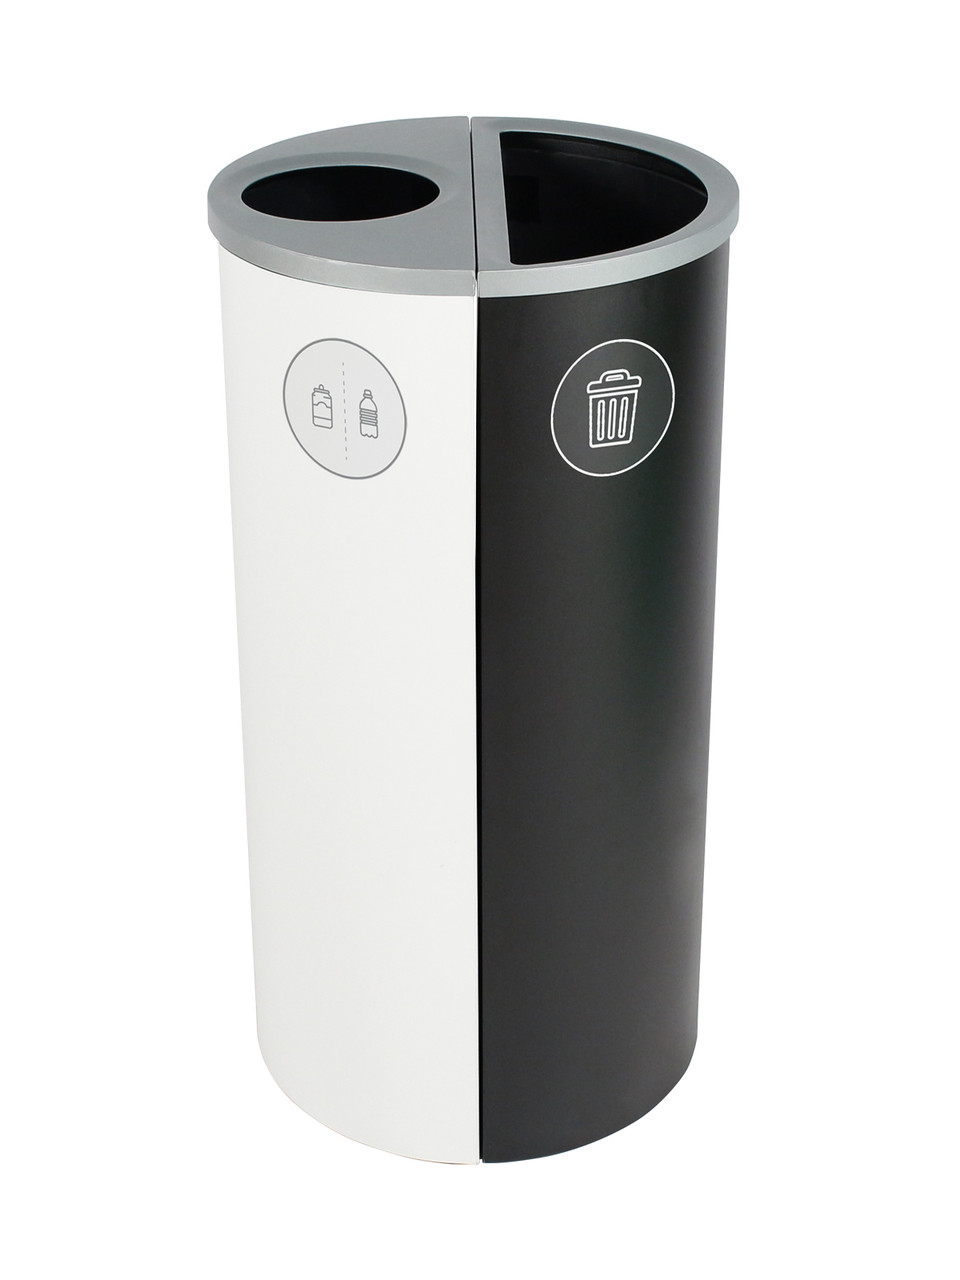 16 Gallon Spectrum Round Trash Can & Recycle Bin White/Black 8107085-14